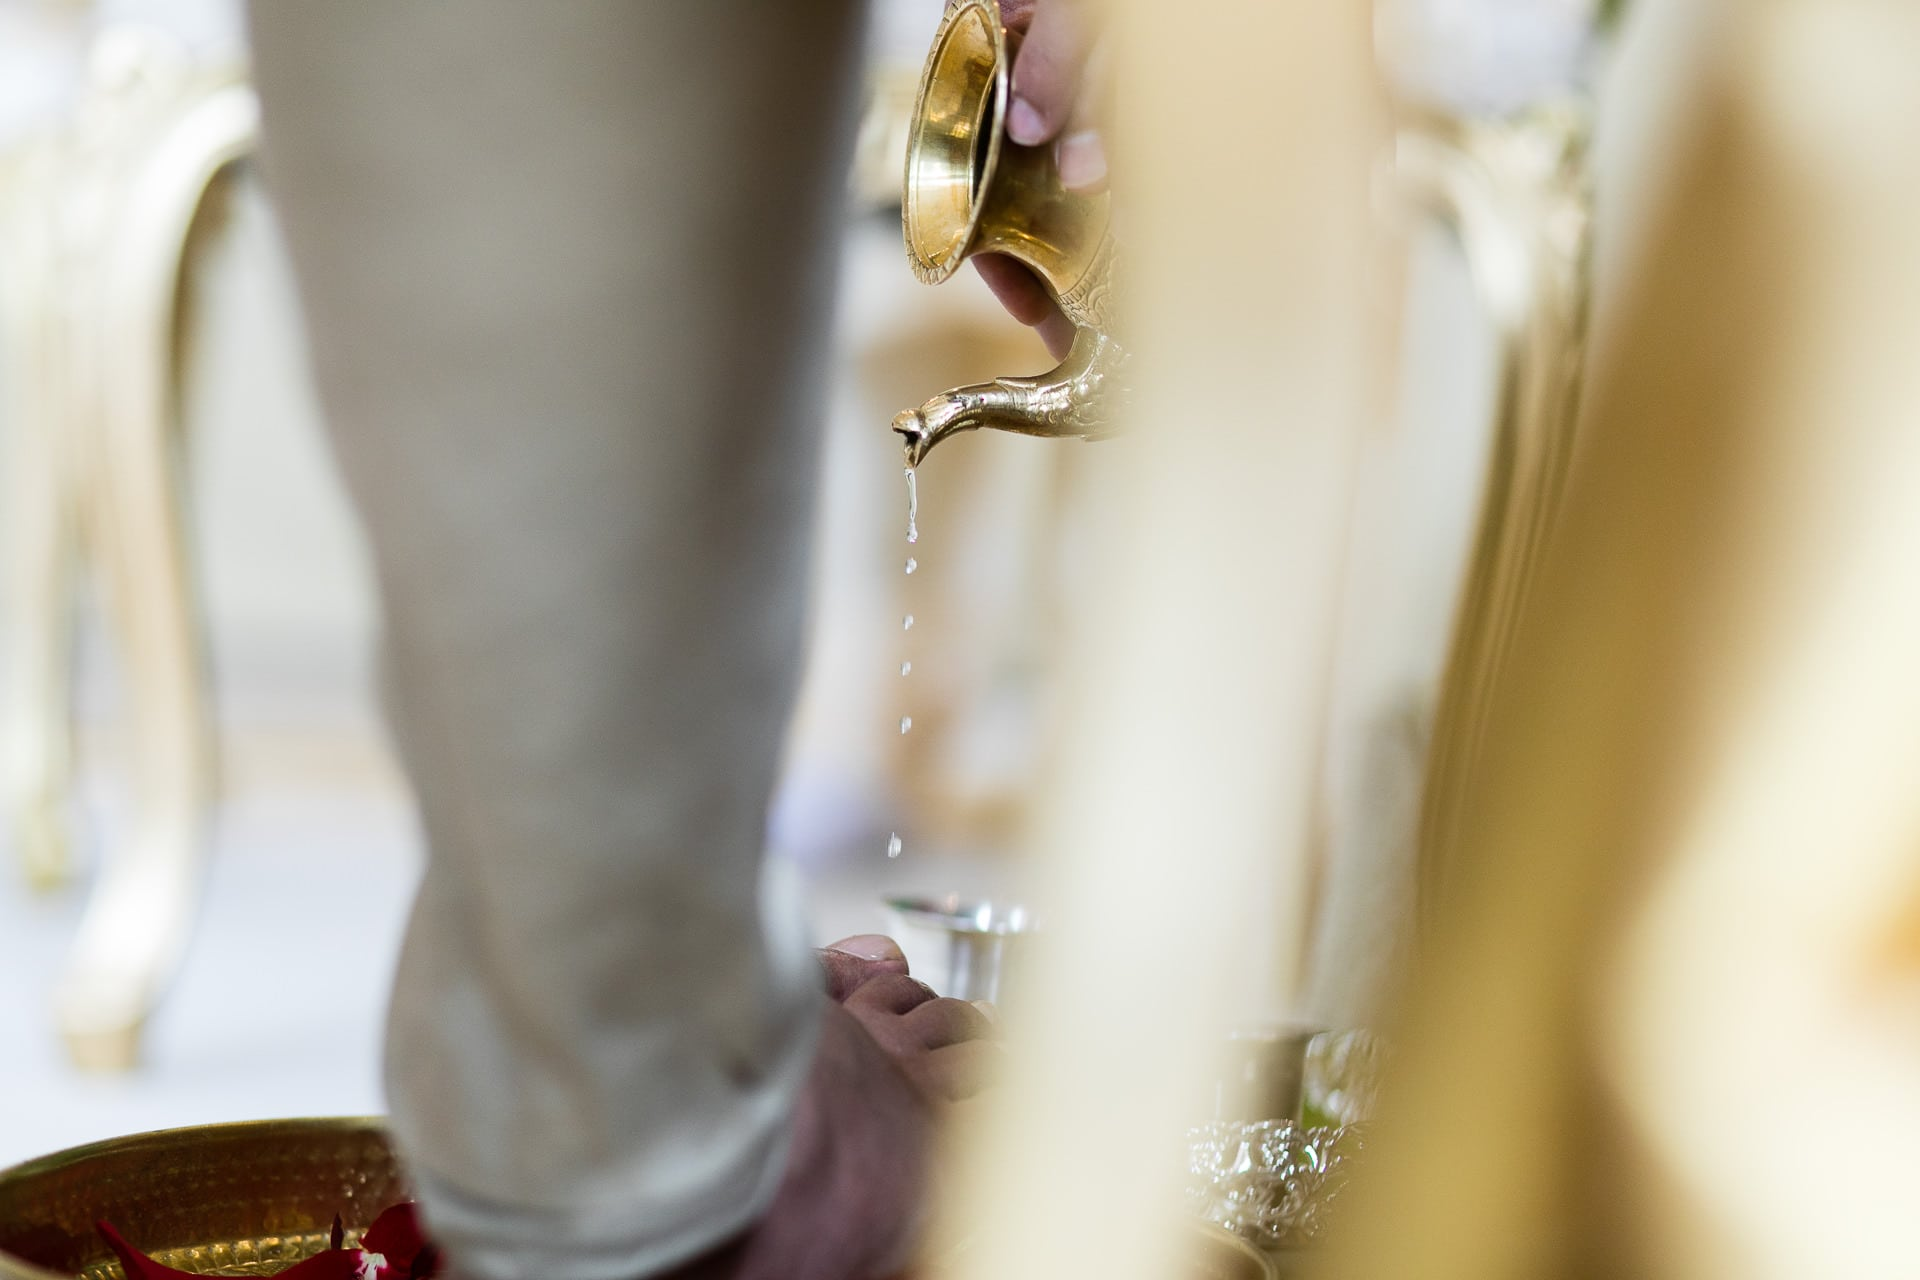 Water being poured onto the feet of the groom